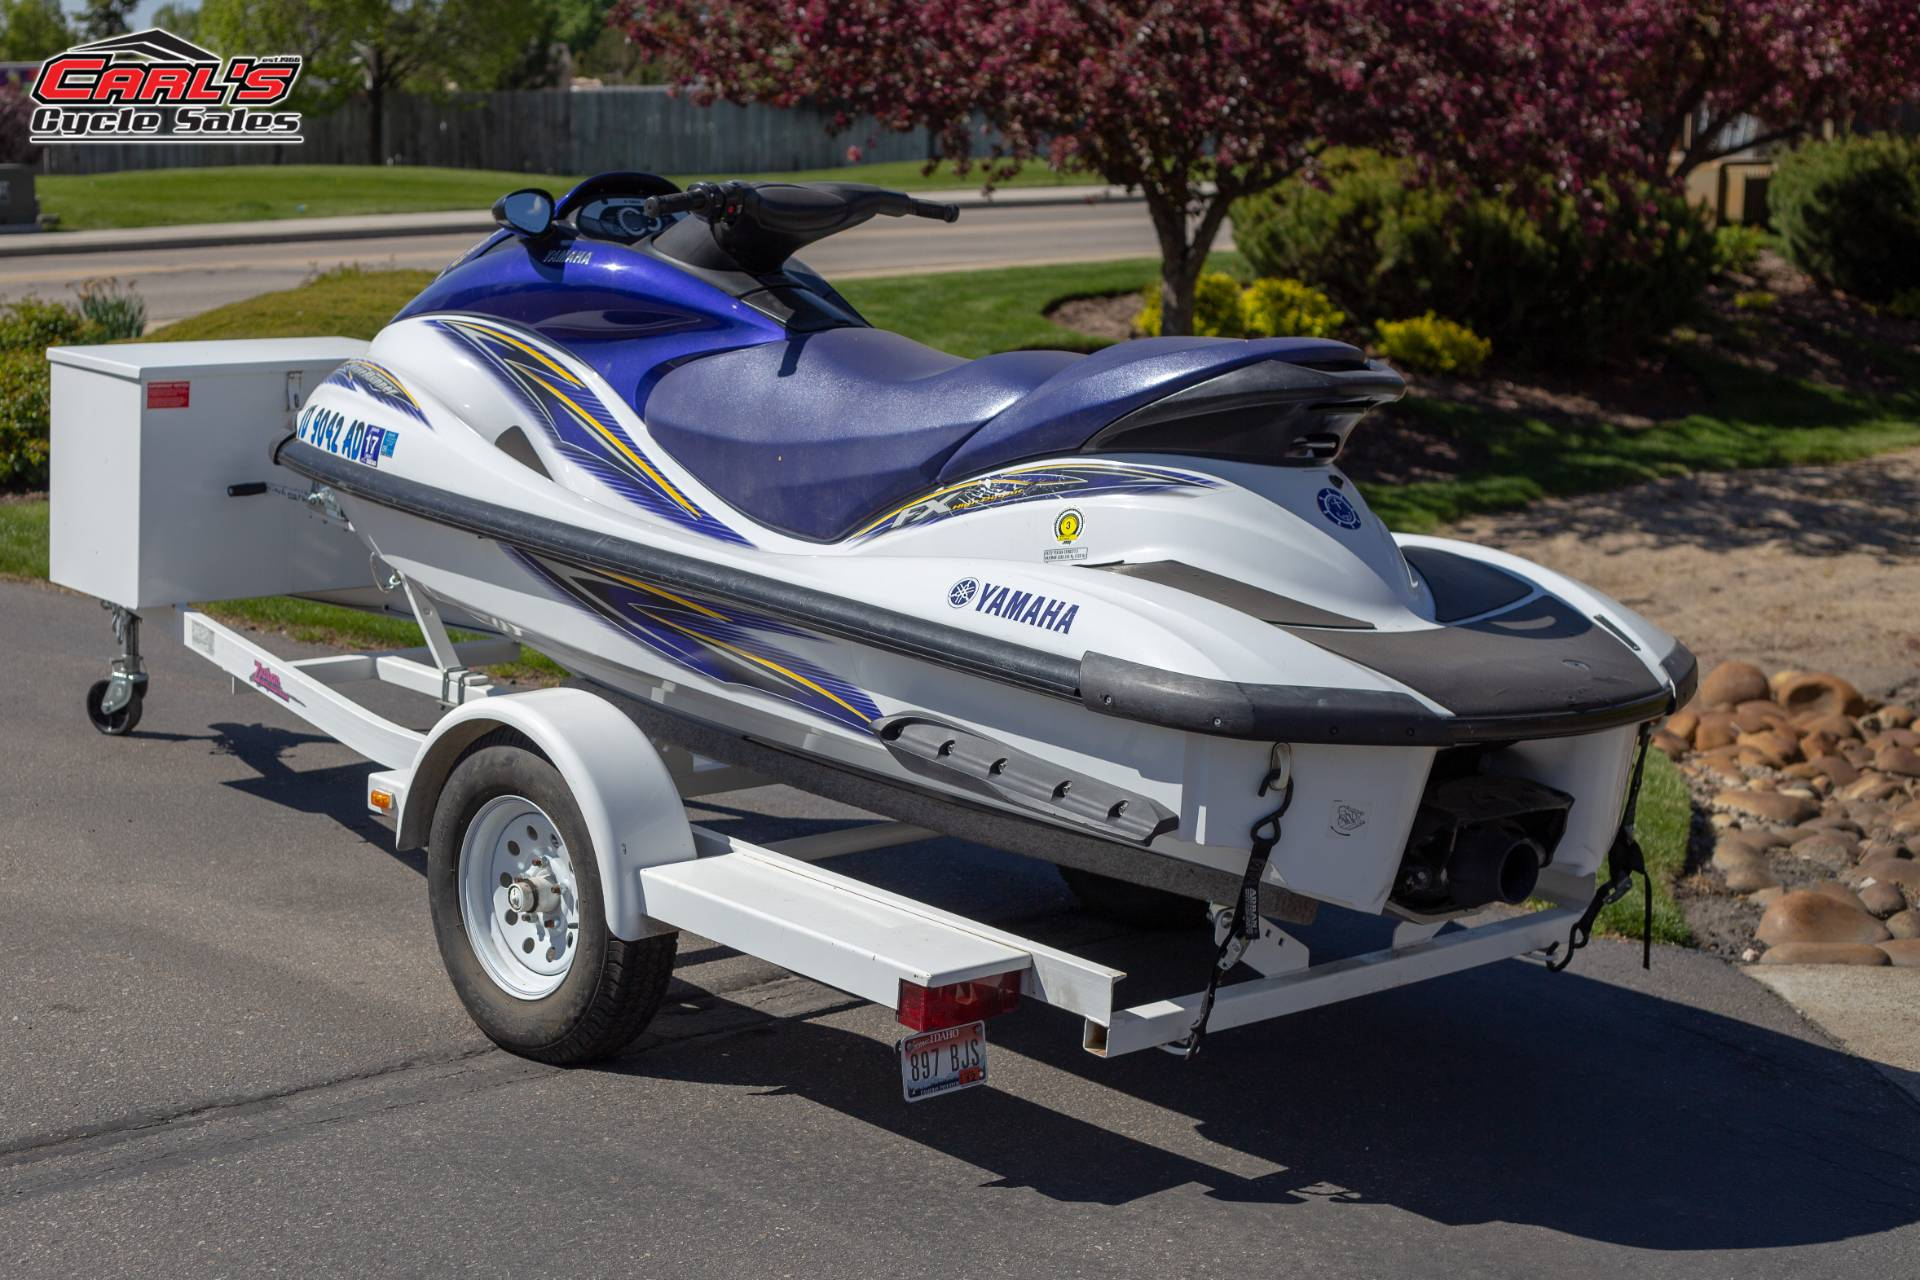 2001 Other Zieman Single Jet Ski Trailer in Boise, Idaho - Photo 3